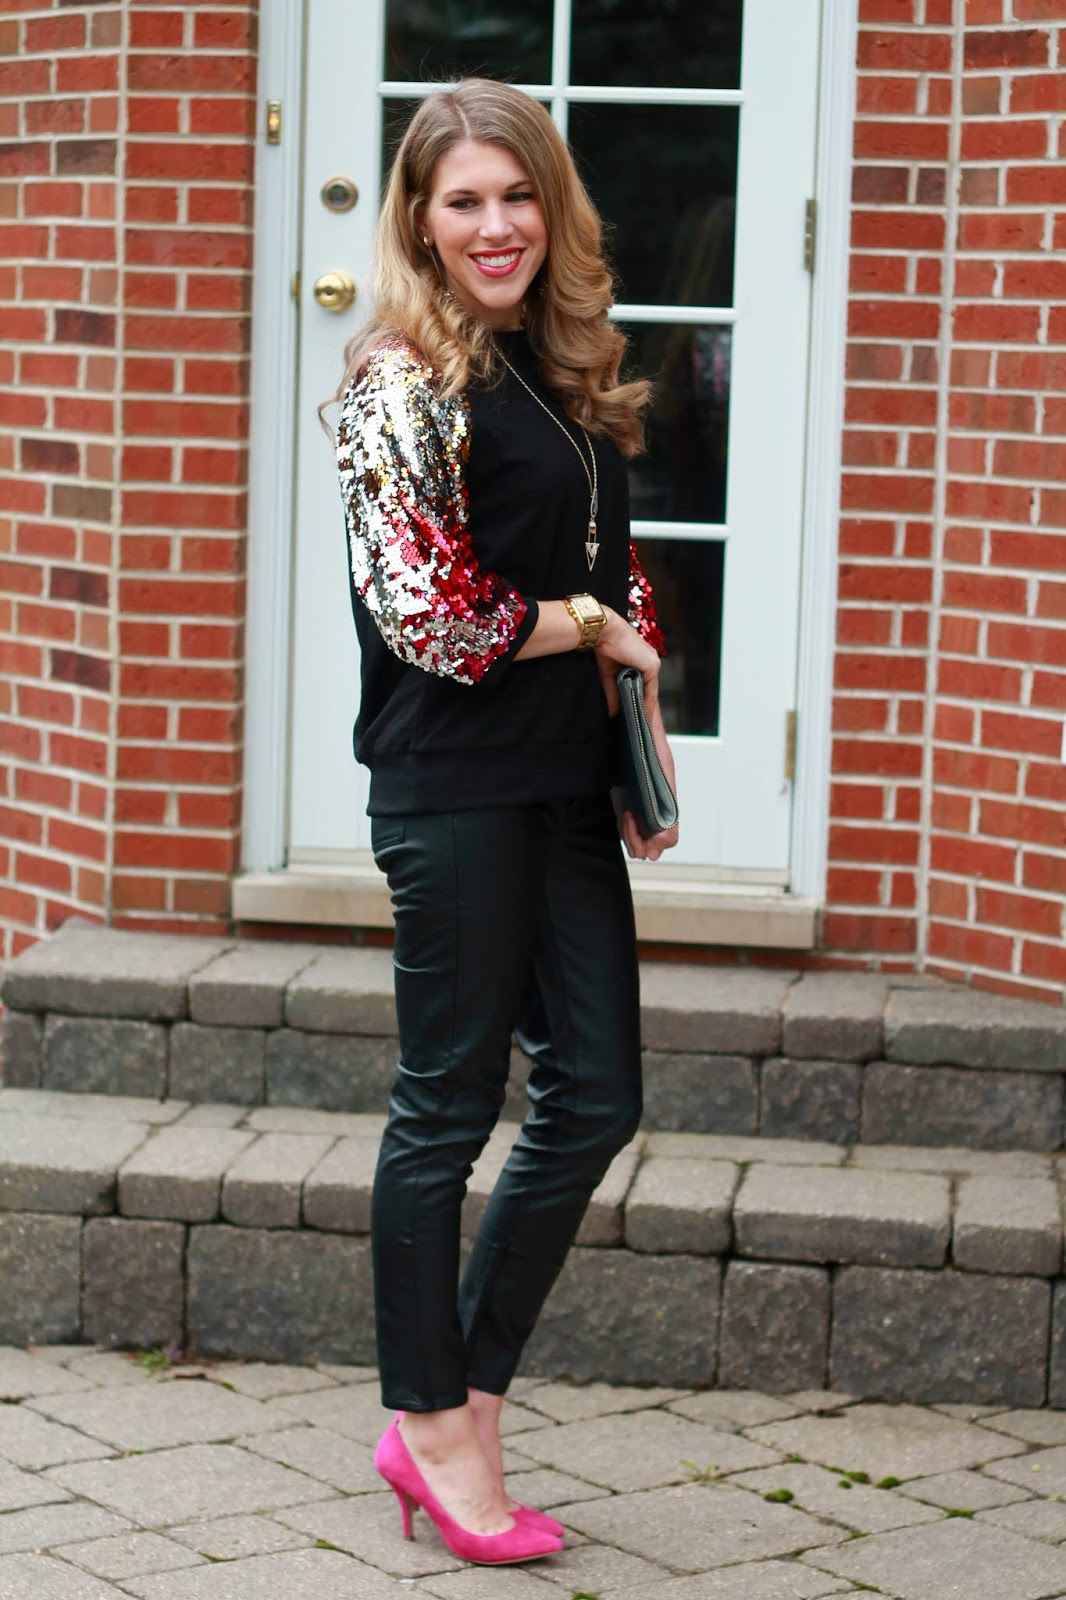 de73c686a6fba7 I do deClaire: Bling it on! NYE Outfit Inspiration & Linkup